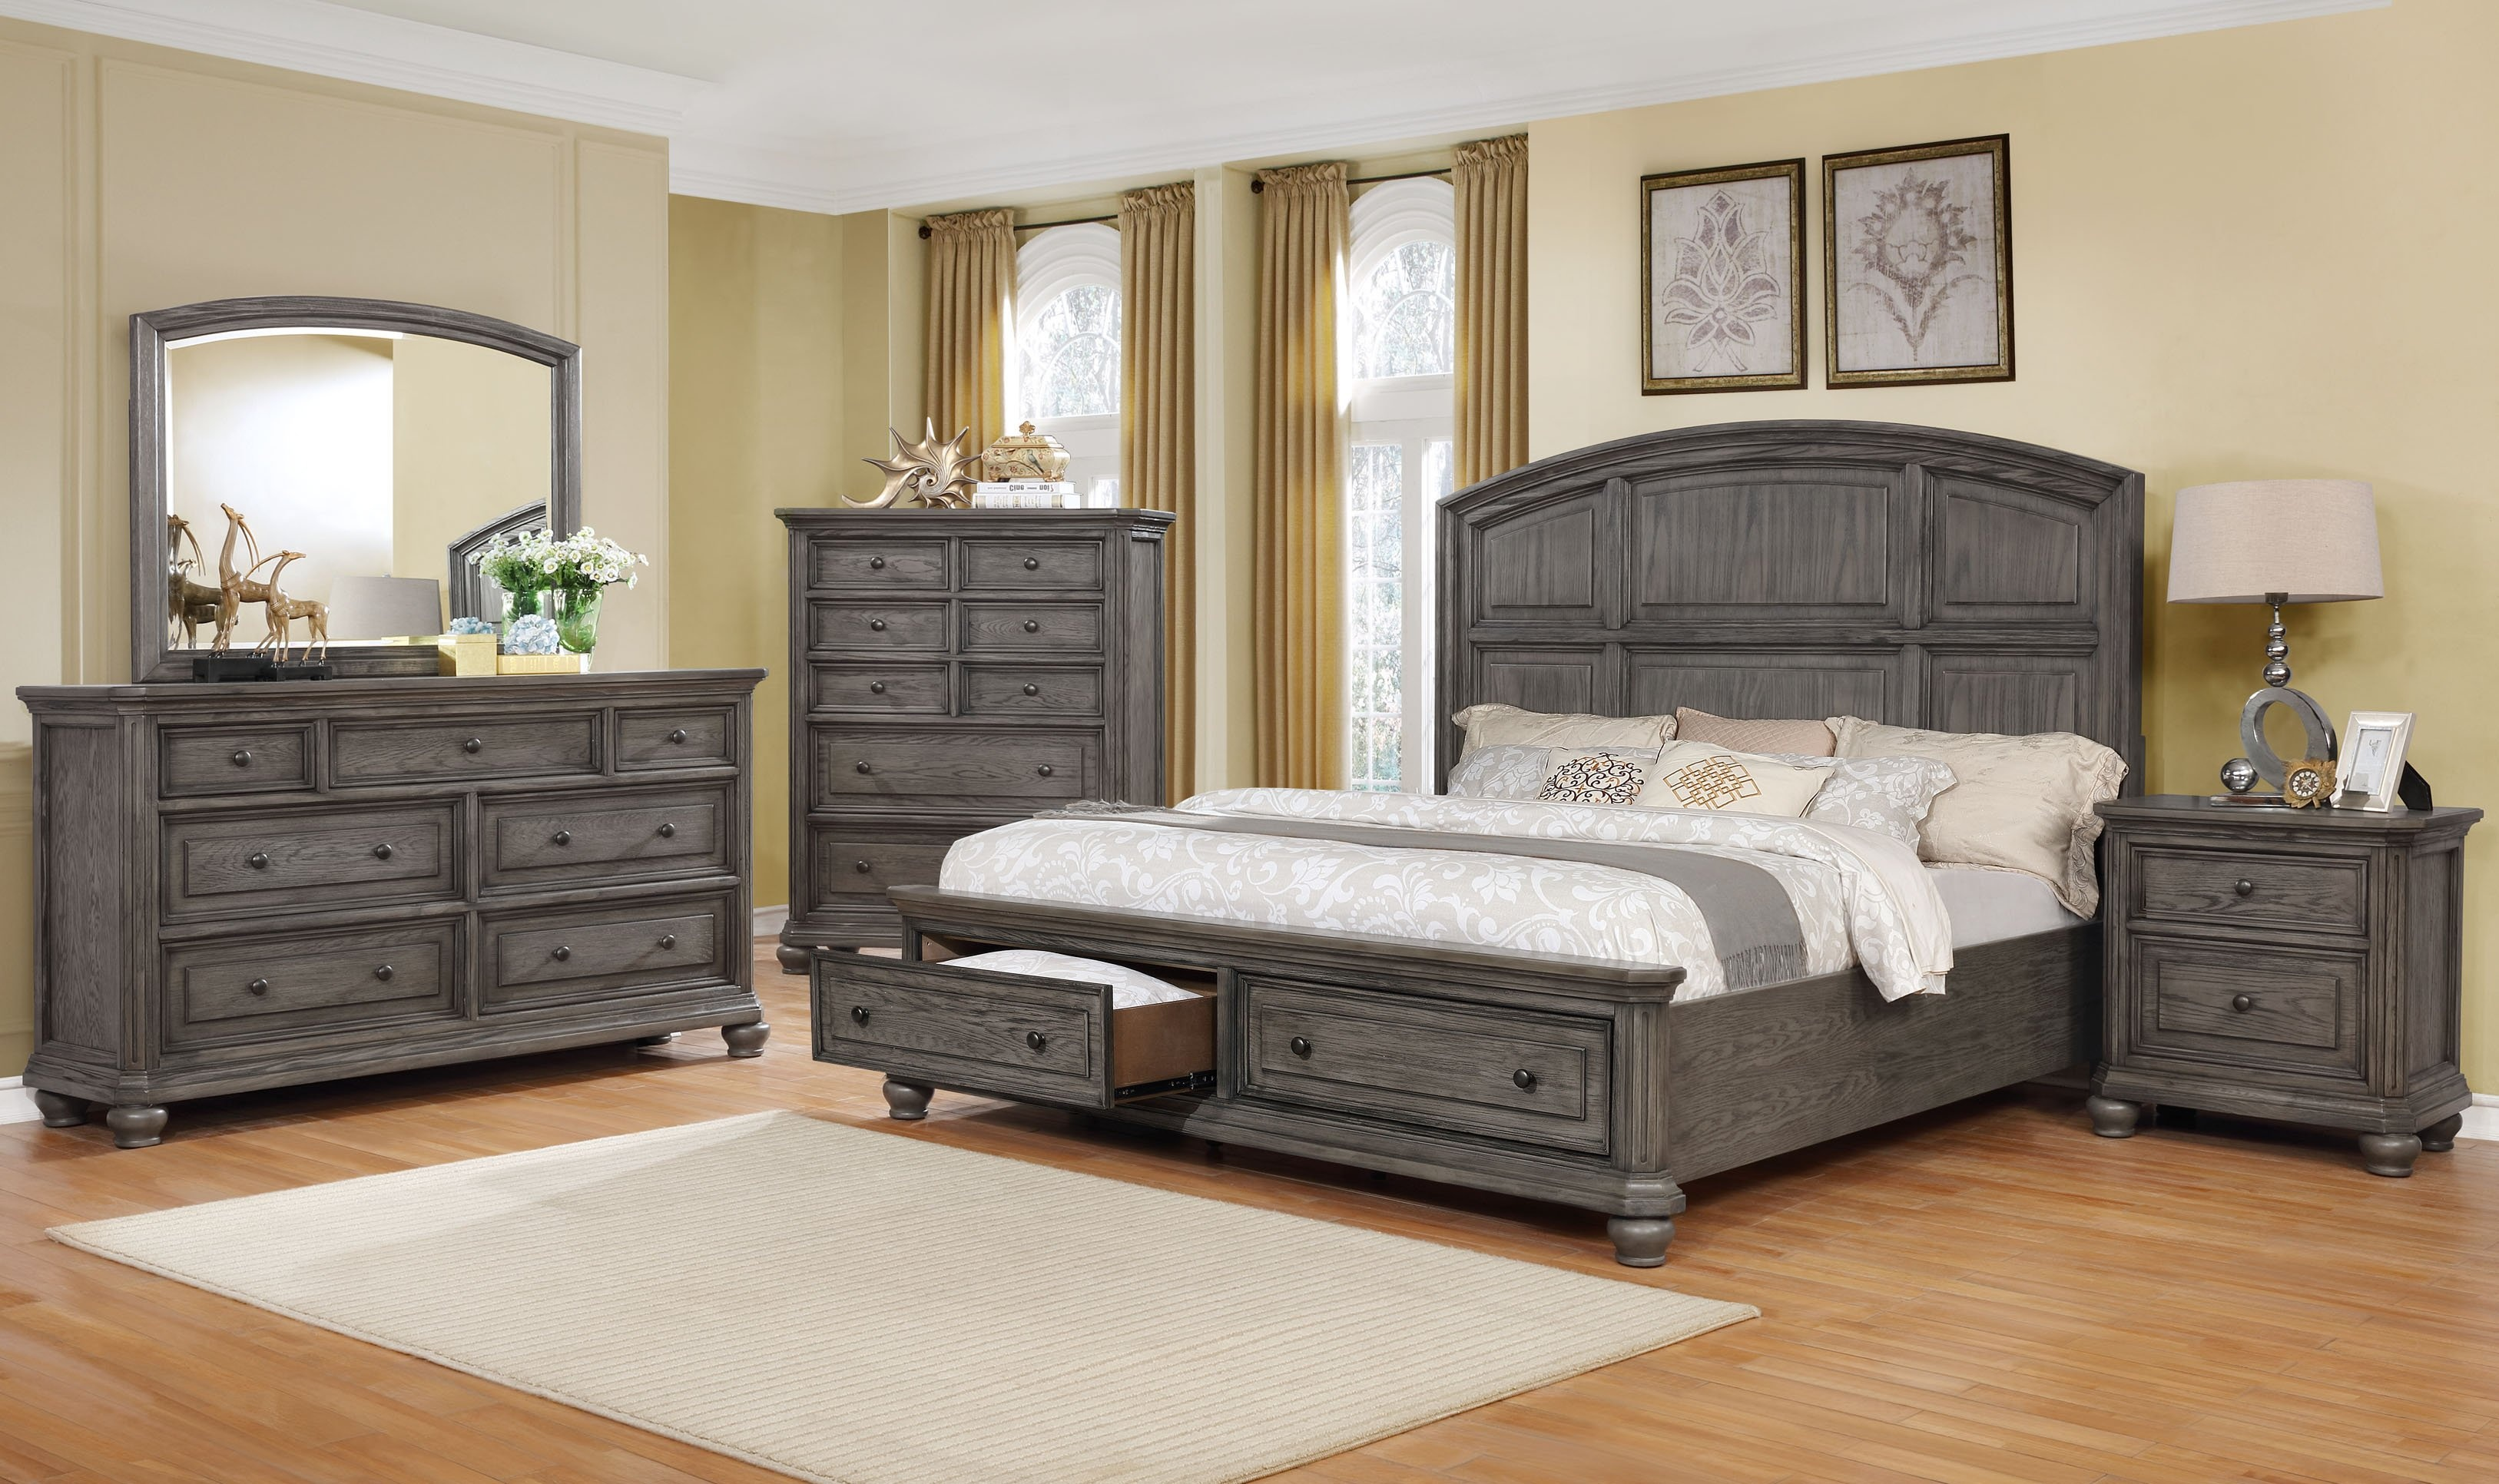 B1885 Lavonia Storage Bedroom Set